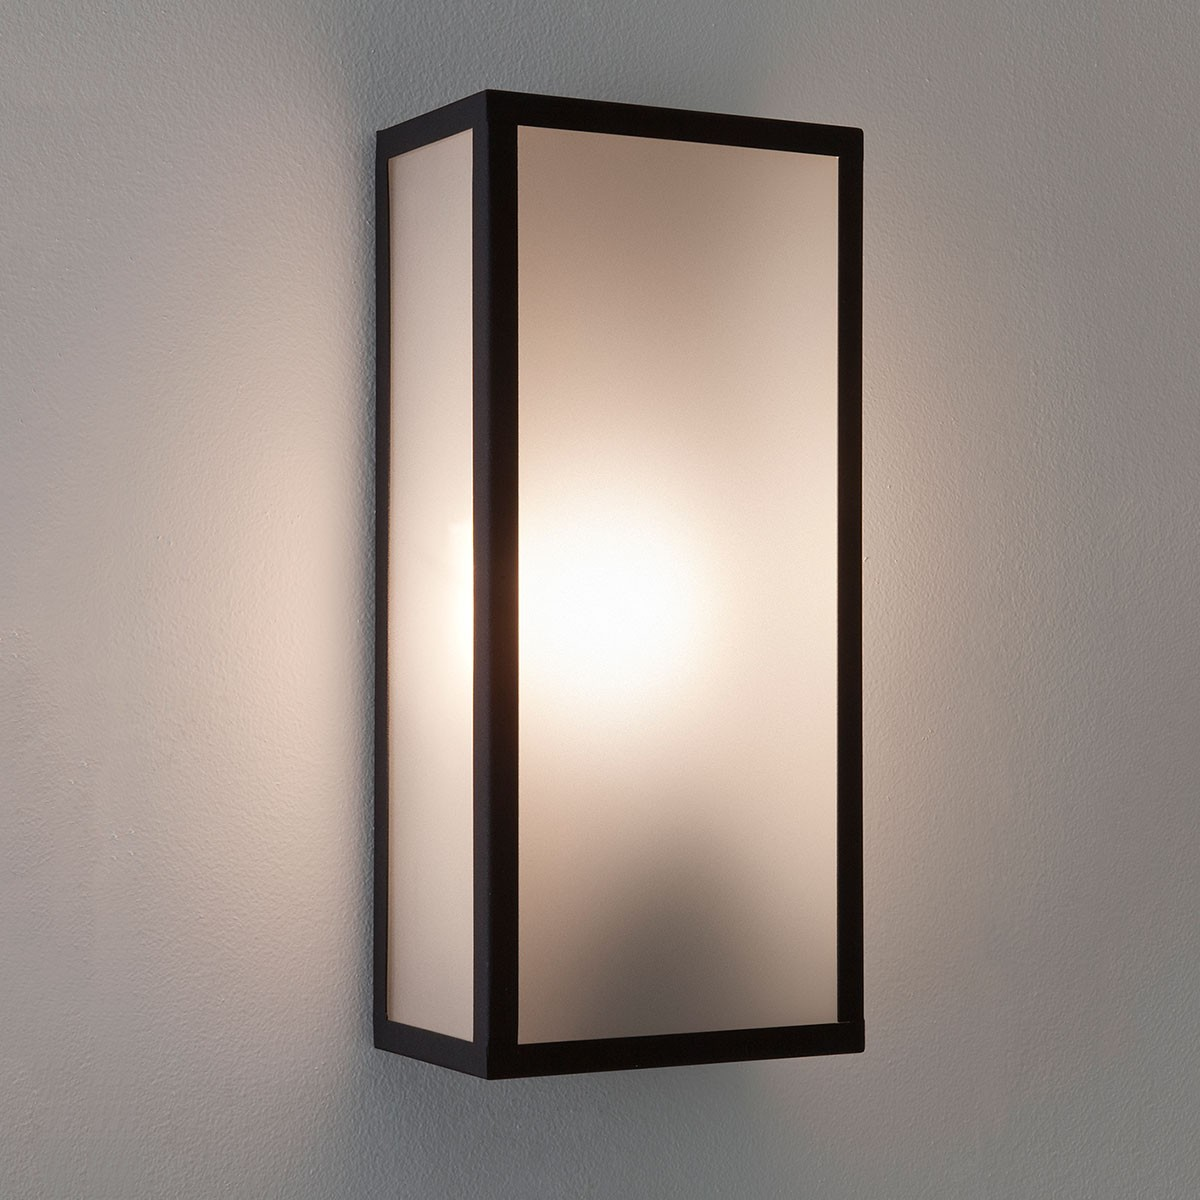 Luxury Exterior Wall Lights : Astro Messina Black with Frosted Glass Outdoor Wall Light at UK Electrical Supplies.